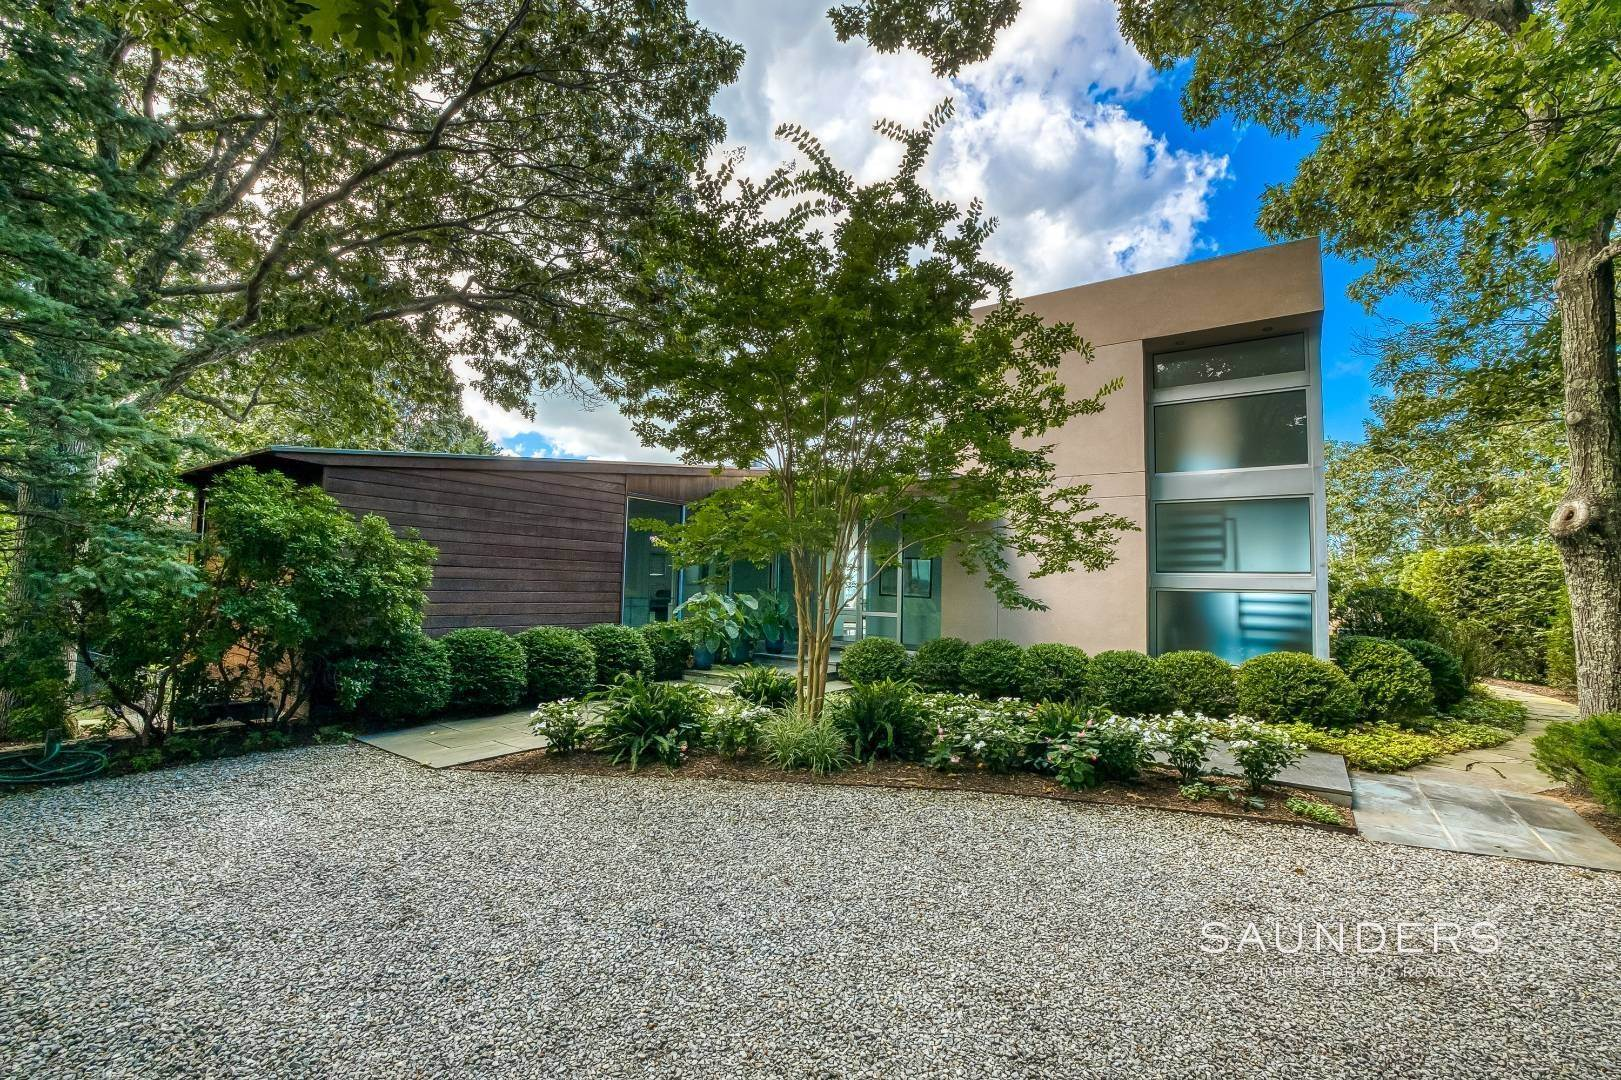 29. Single Family Homes for Sale at Shelter Island Classic Modern 42 Prospect Avenue And 23 Serpentine Drive, Shelter Island Heights, Shelter Island, NY 11965